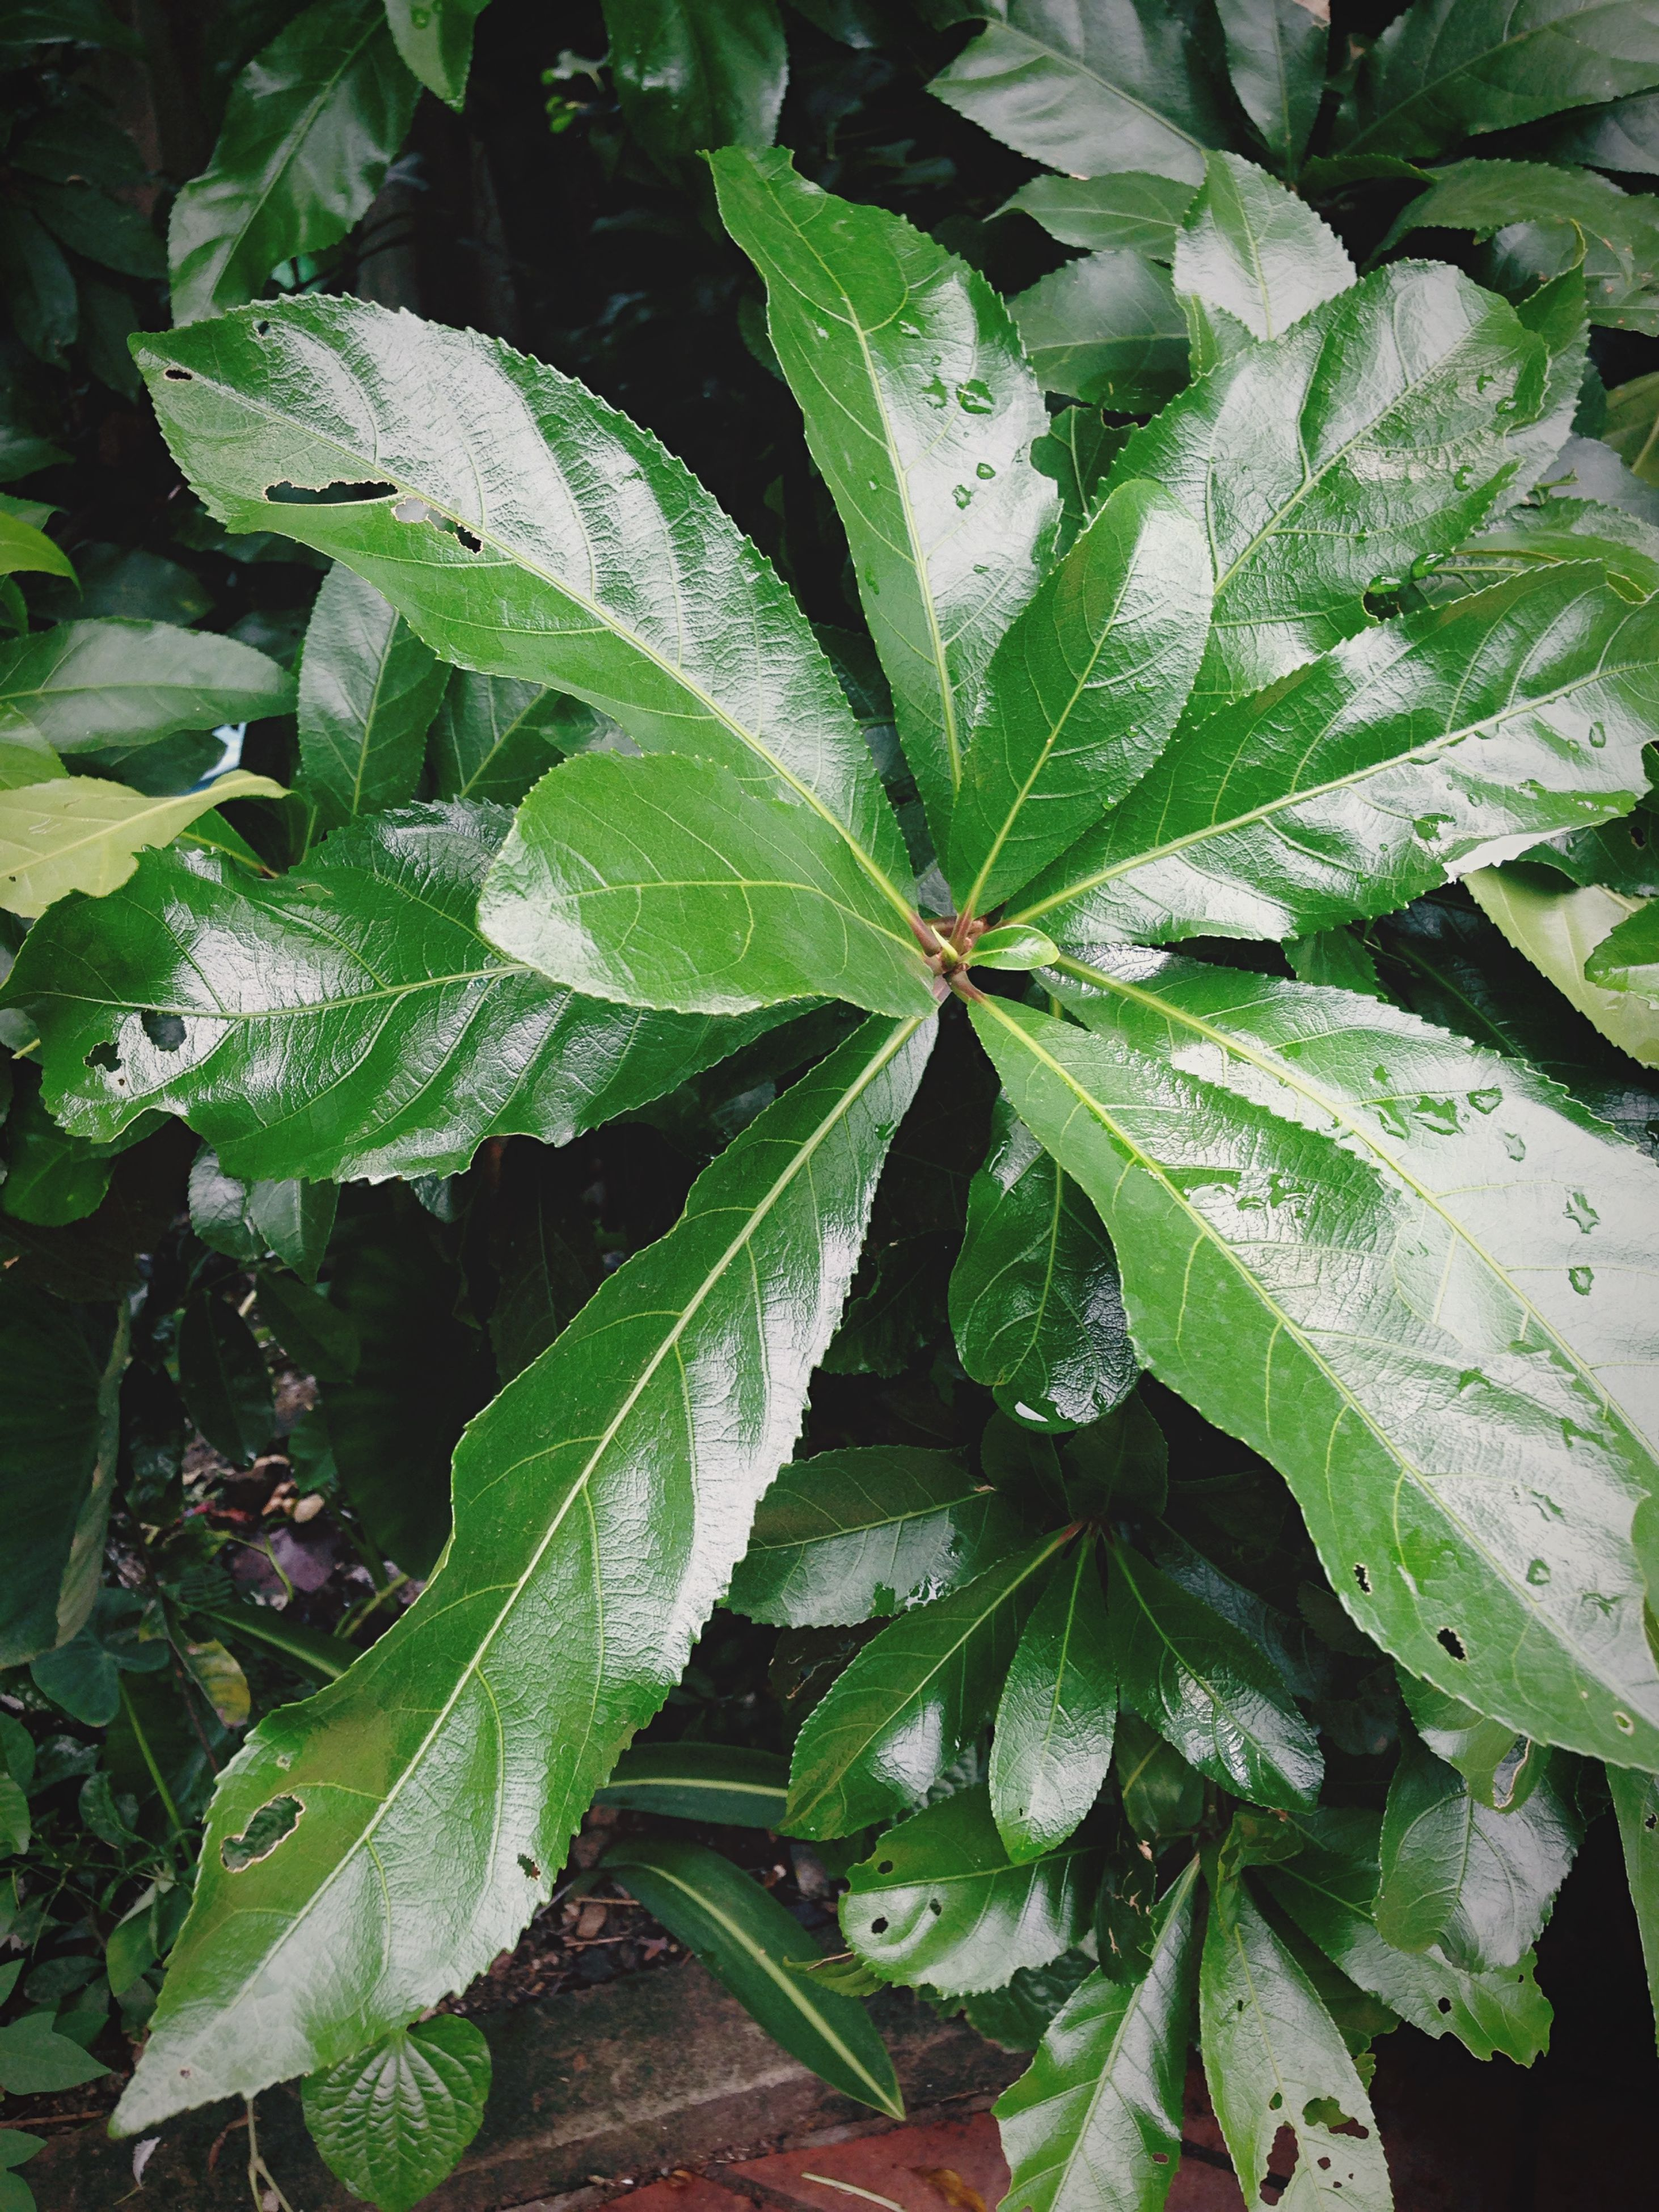 leaf, growth, green color, plant, freshness, nature, close-up, leaf vein, beauty in nature, leaves, wet, high angle view, drop, fragility, full frame, green, day, no people, backgrounds, outdoors